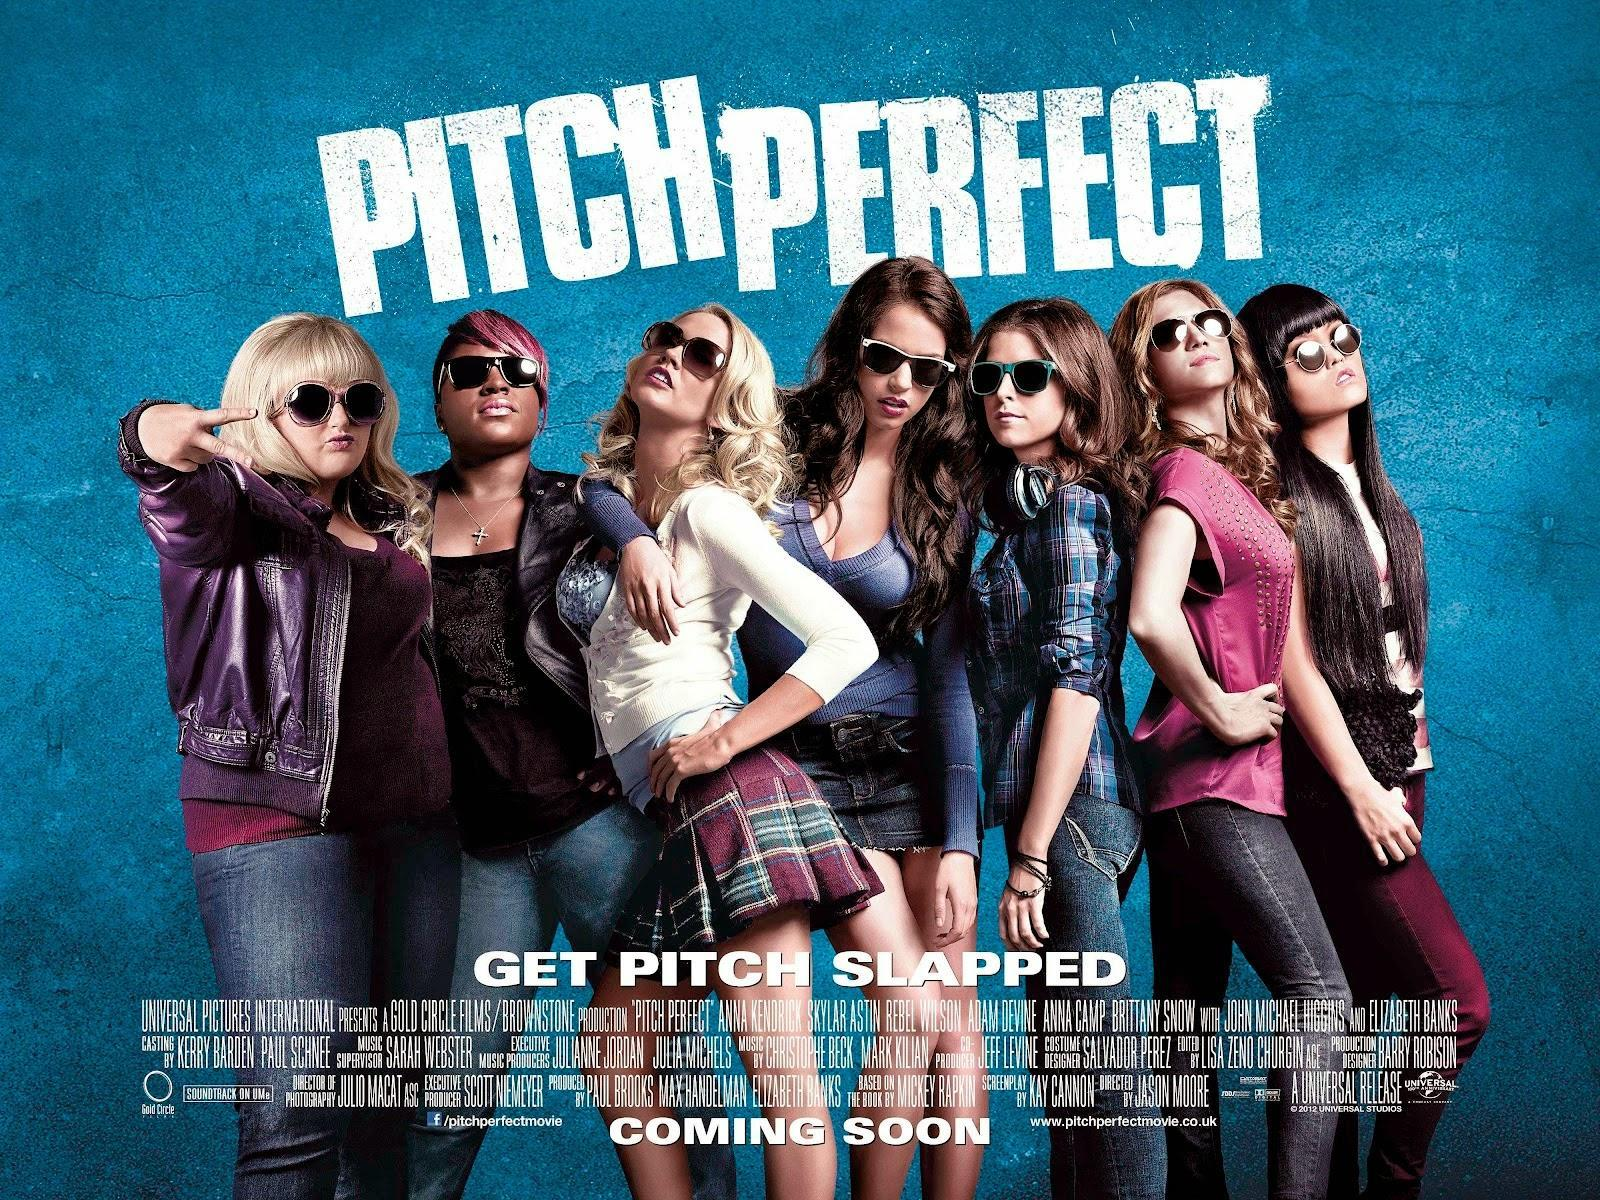 Image gallery for Pitch Perfect - FilmAffinity